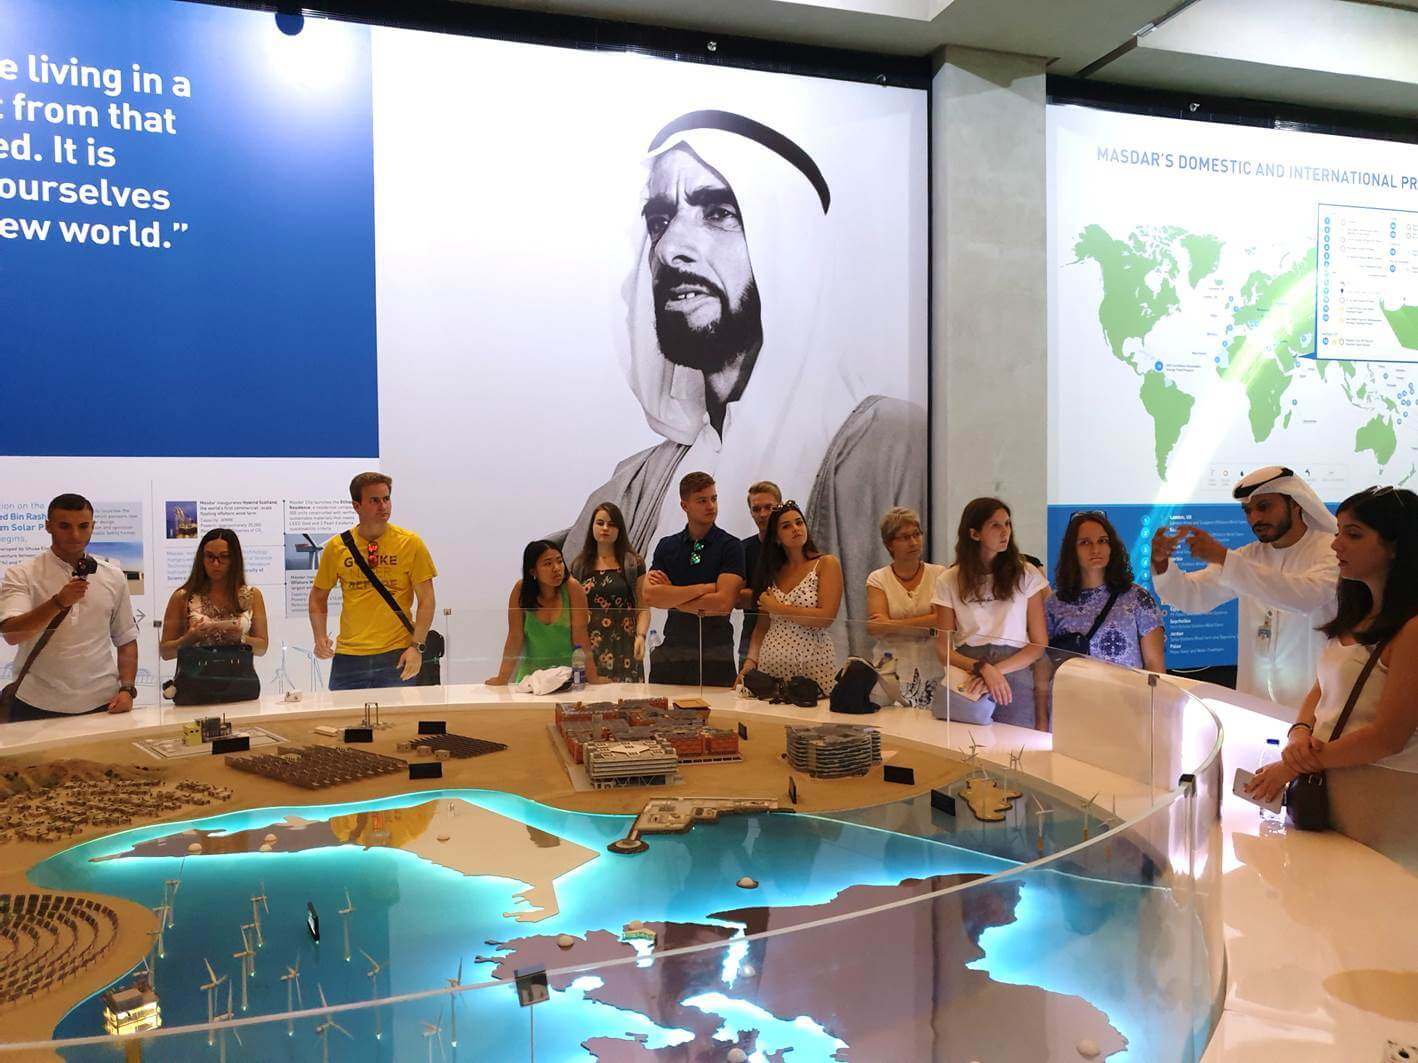 Besucher in Dubai - Masdar City